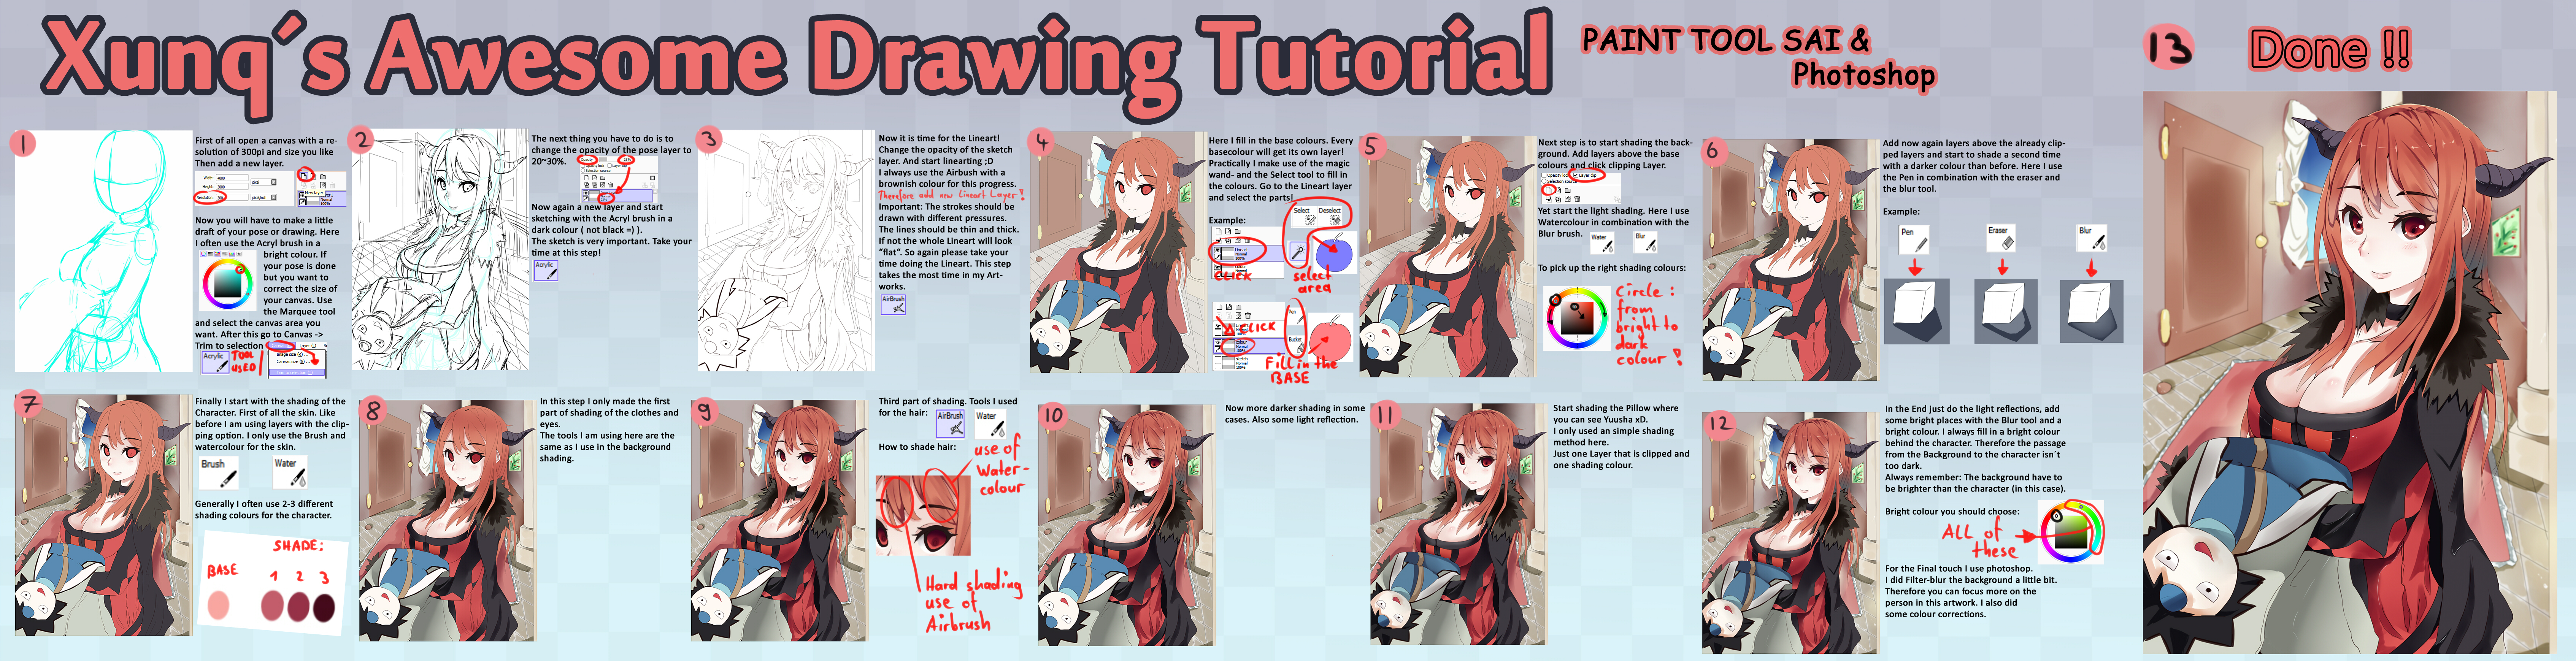 How to draw Manga Art by Xunq